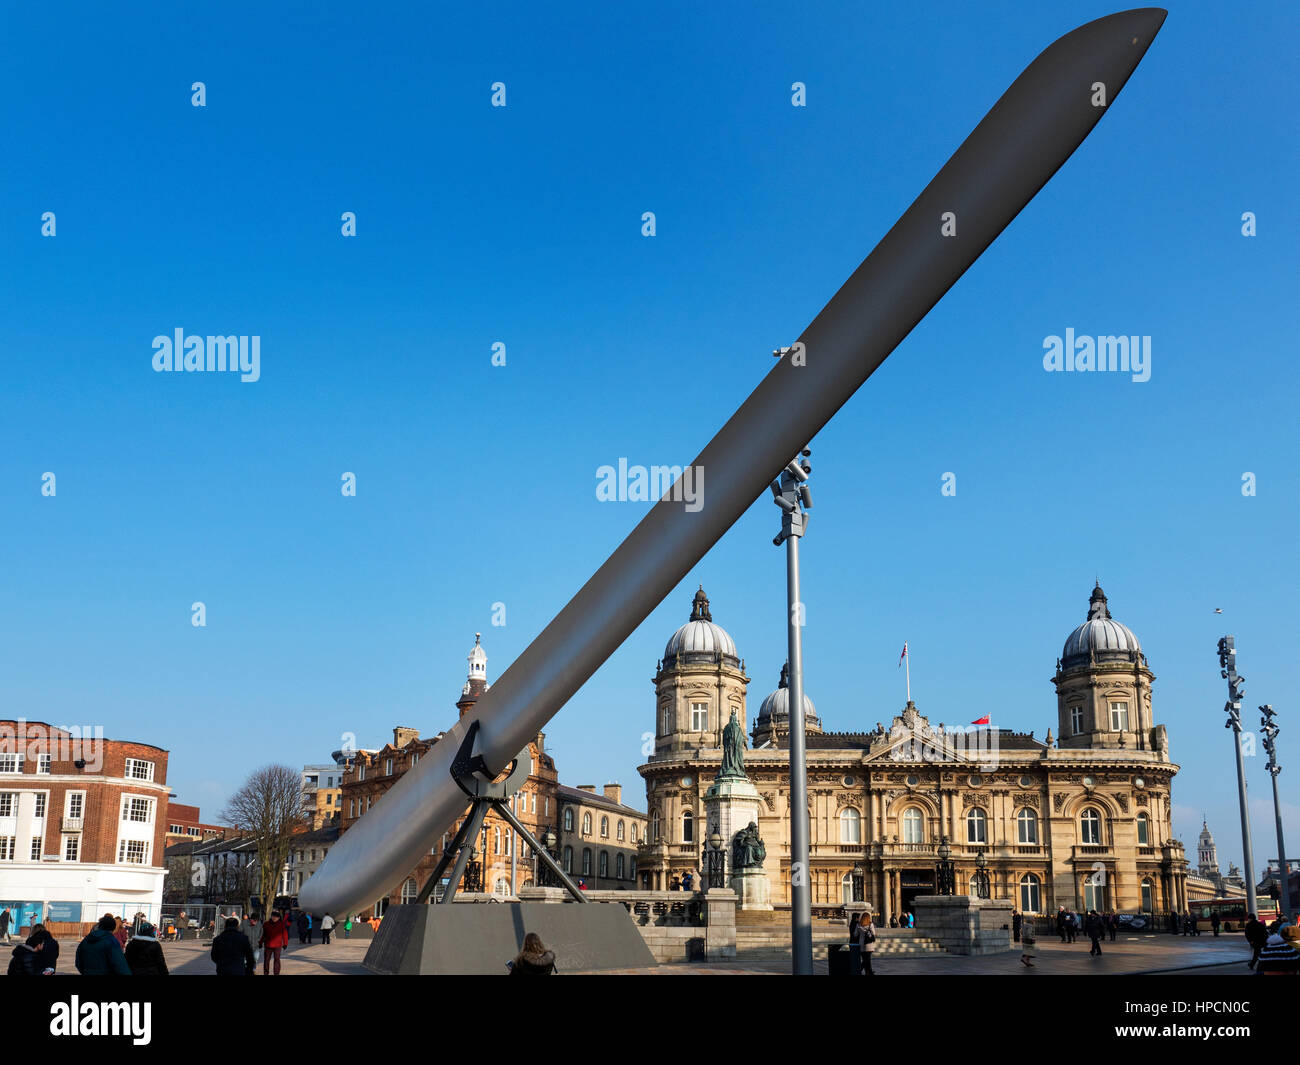 Blade Sculpture in front of Maritime Museum in Queen Victoria Square for Hull UK City of Culture 2017 Hull Yorkshire - Stock Image